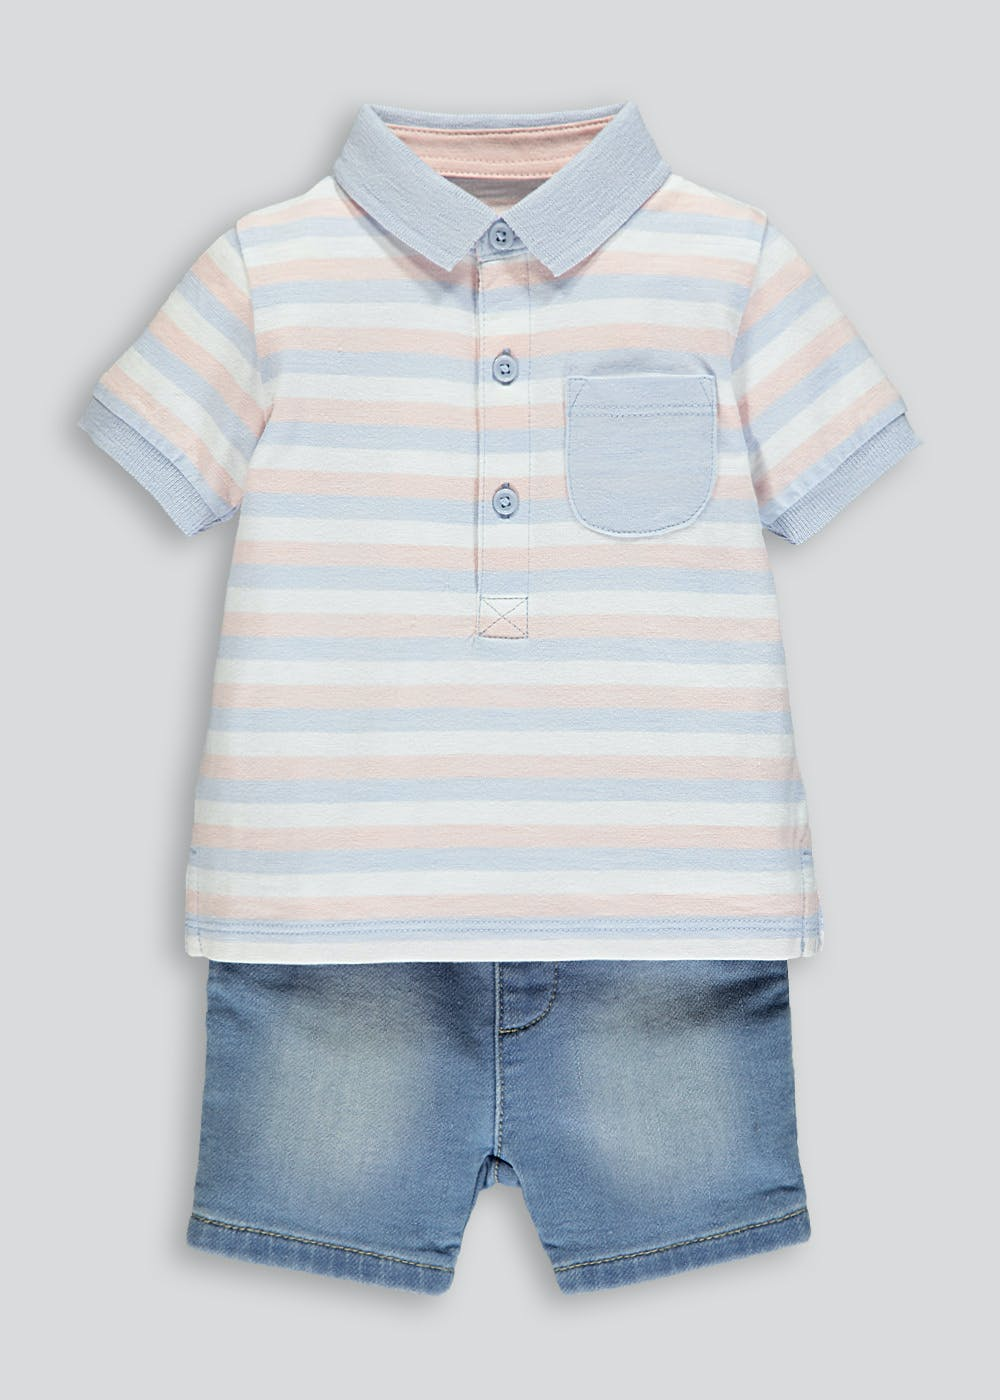 Buy Cheap Life And Legend Boys Adjustable Waist Jeans Age 12-18 Mth New Various Styles Boys' Clothing (newborn-5t) Clothing, Shoes & Accessories